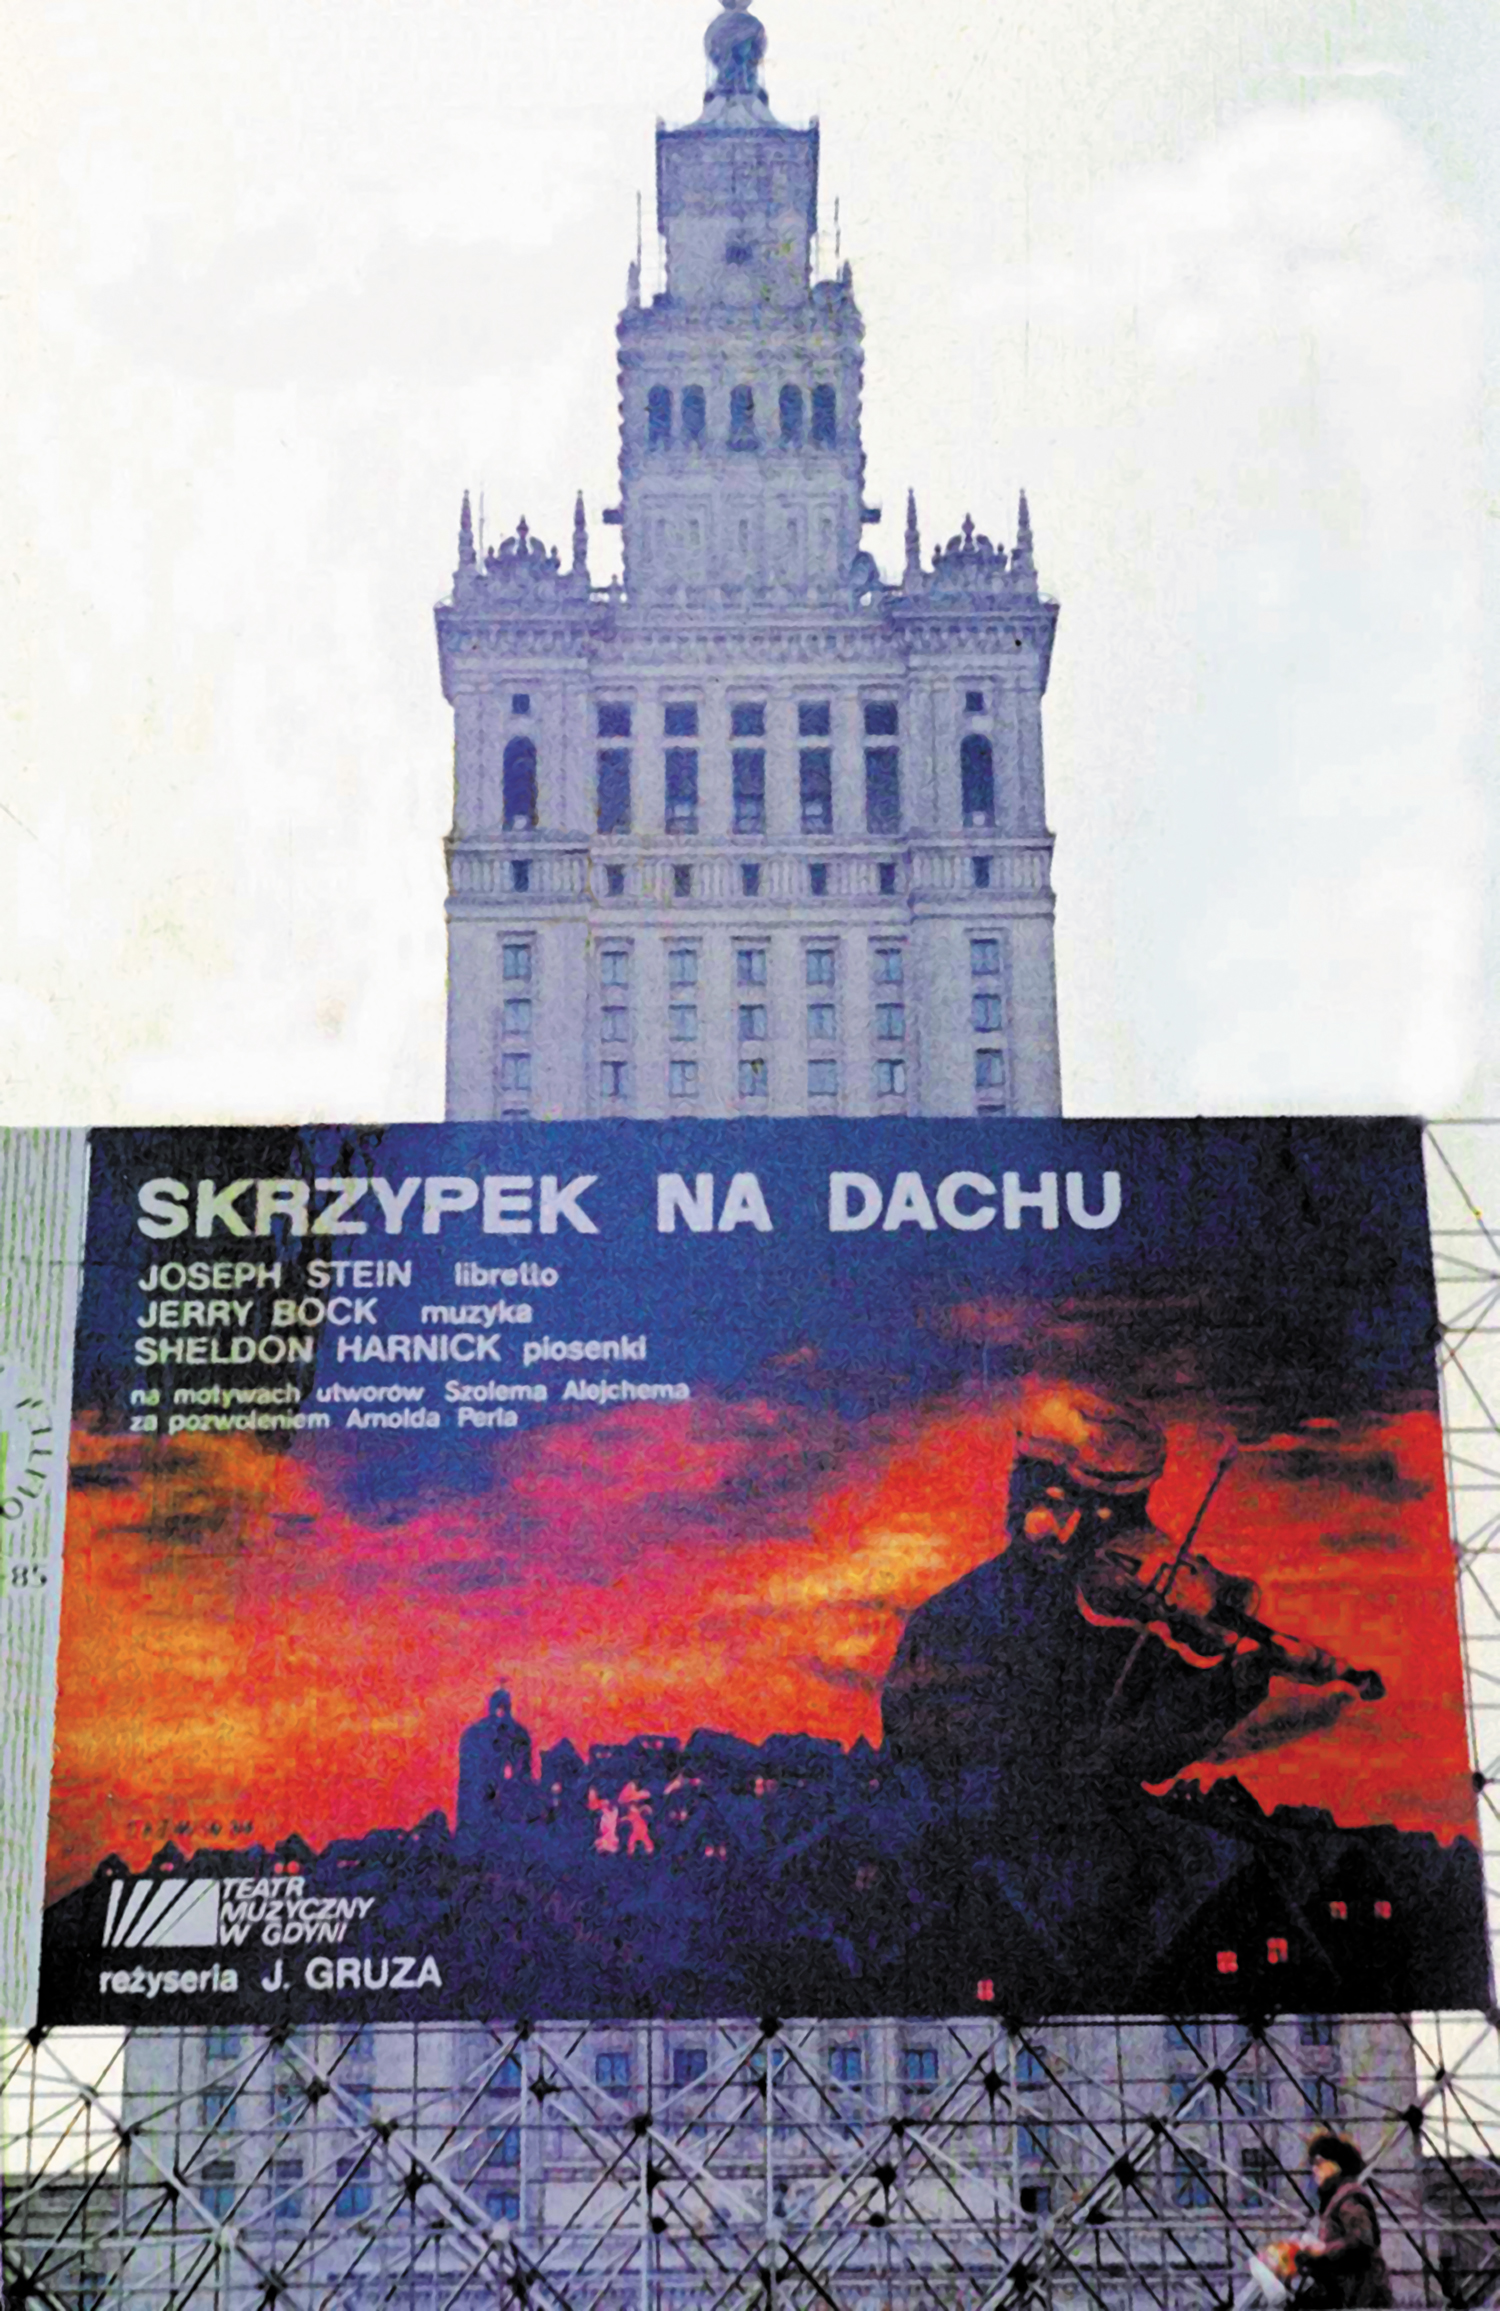 Billboard-advertises-Fiddler-on-the-Roof-in-Warsaw-1984